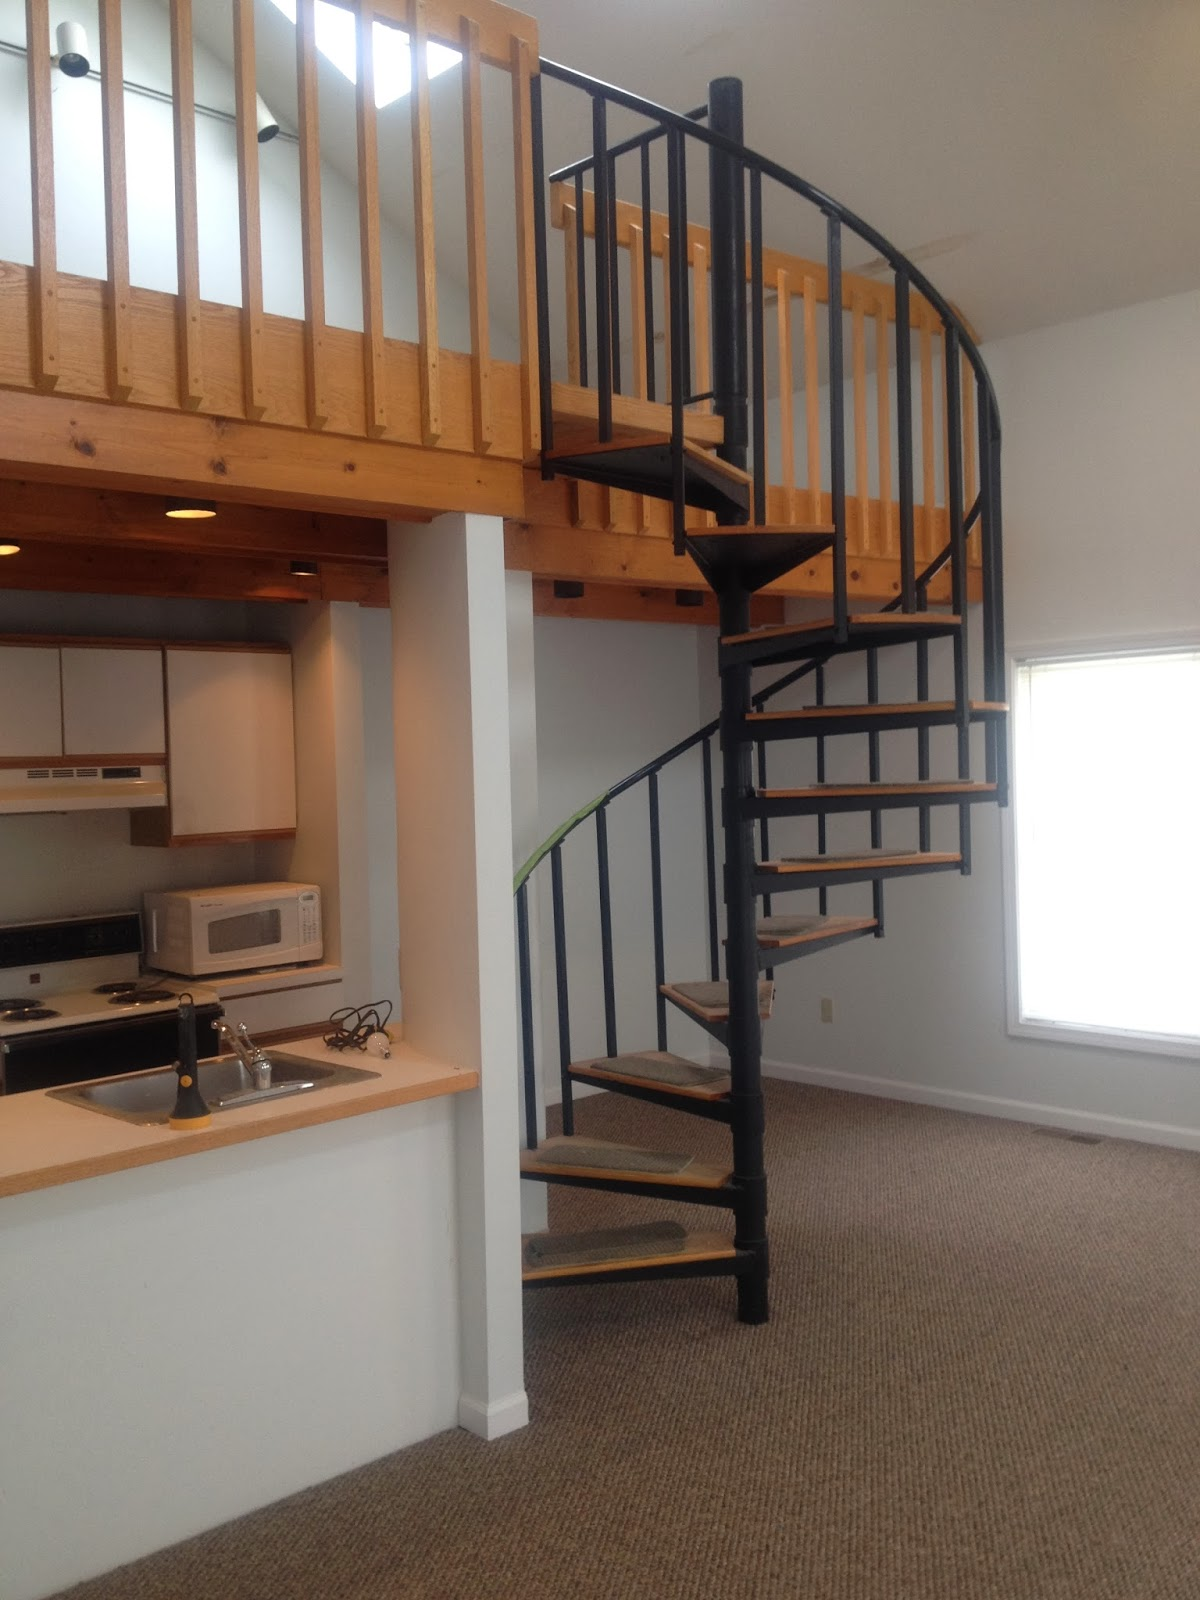 Who Doesn T Love A Spiral Staircase Leading Up To A Loft   Loft With Spiral Staircase   Small   Contemporary   Addition   Timber   New